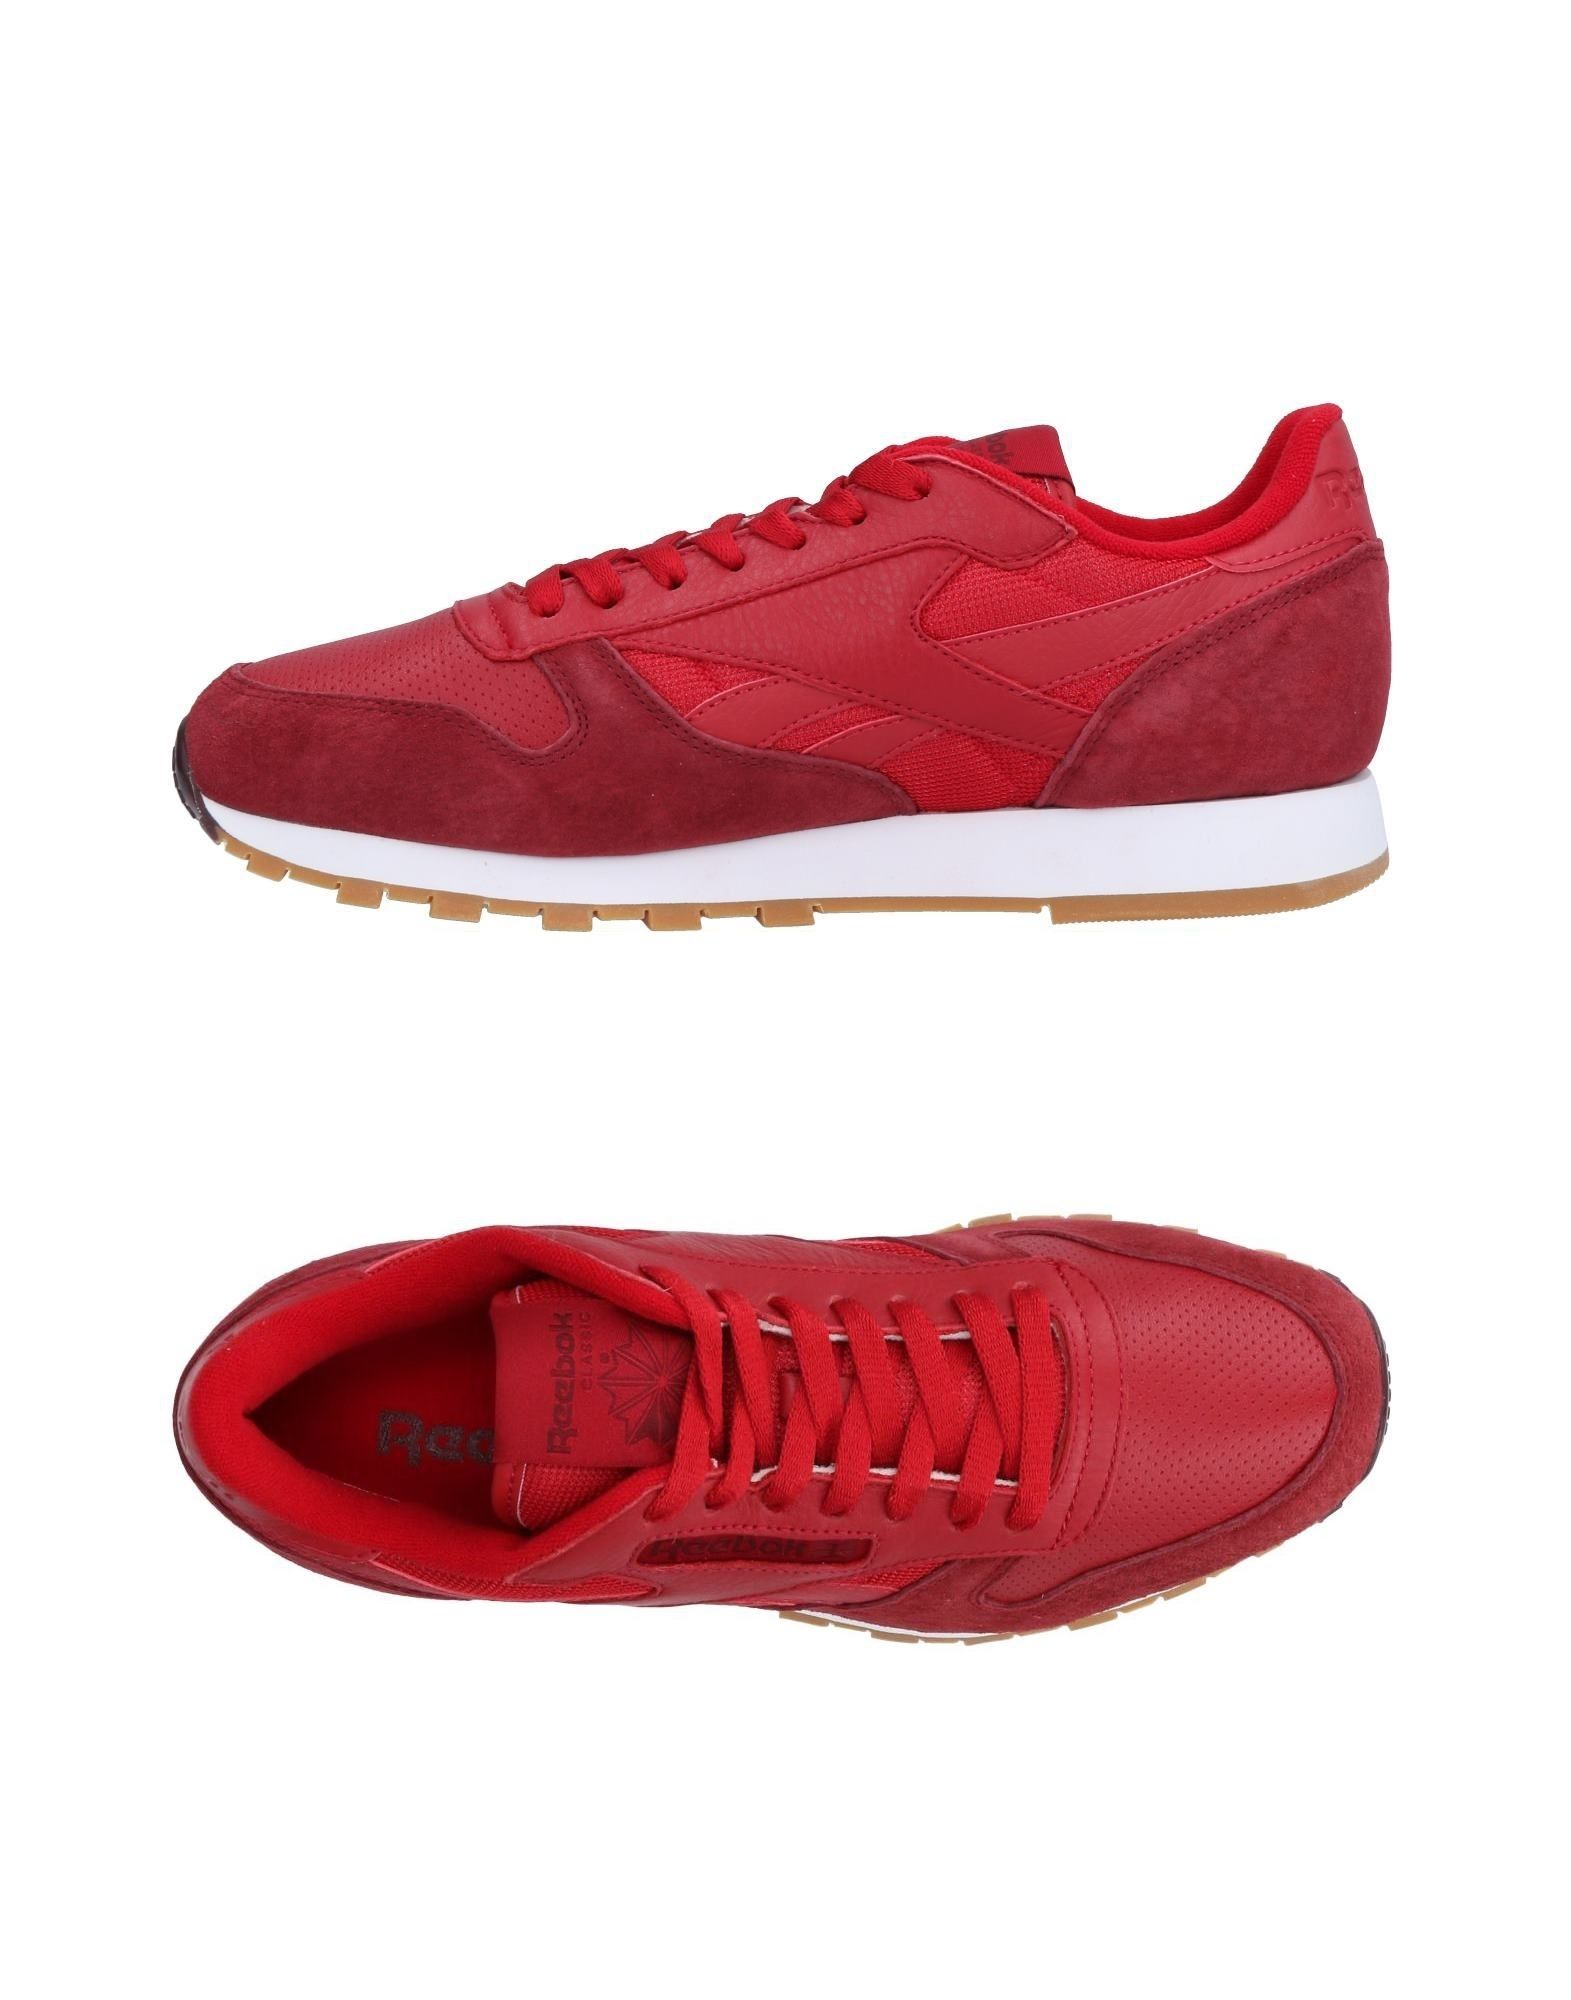 Reebok Sneakers - Men Men Men Reebok Sneakers online on  Canada - 11489202QK d6c794